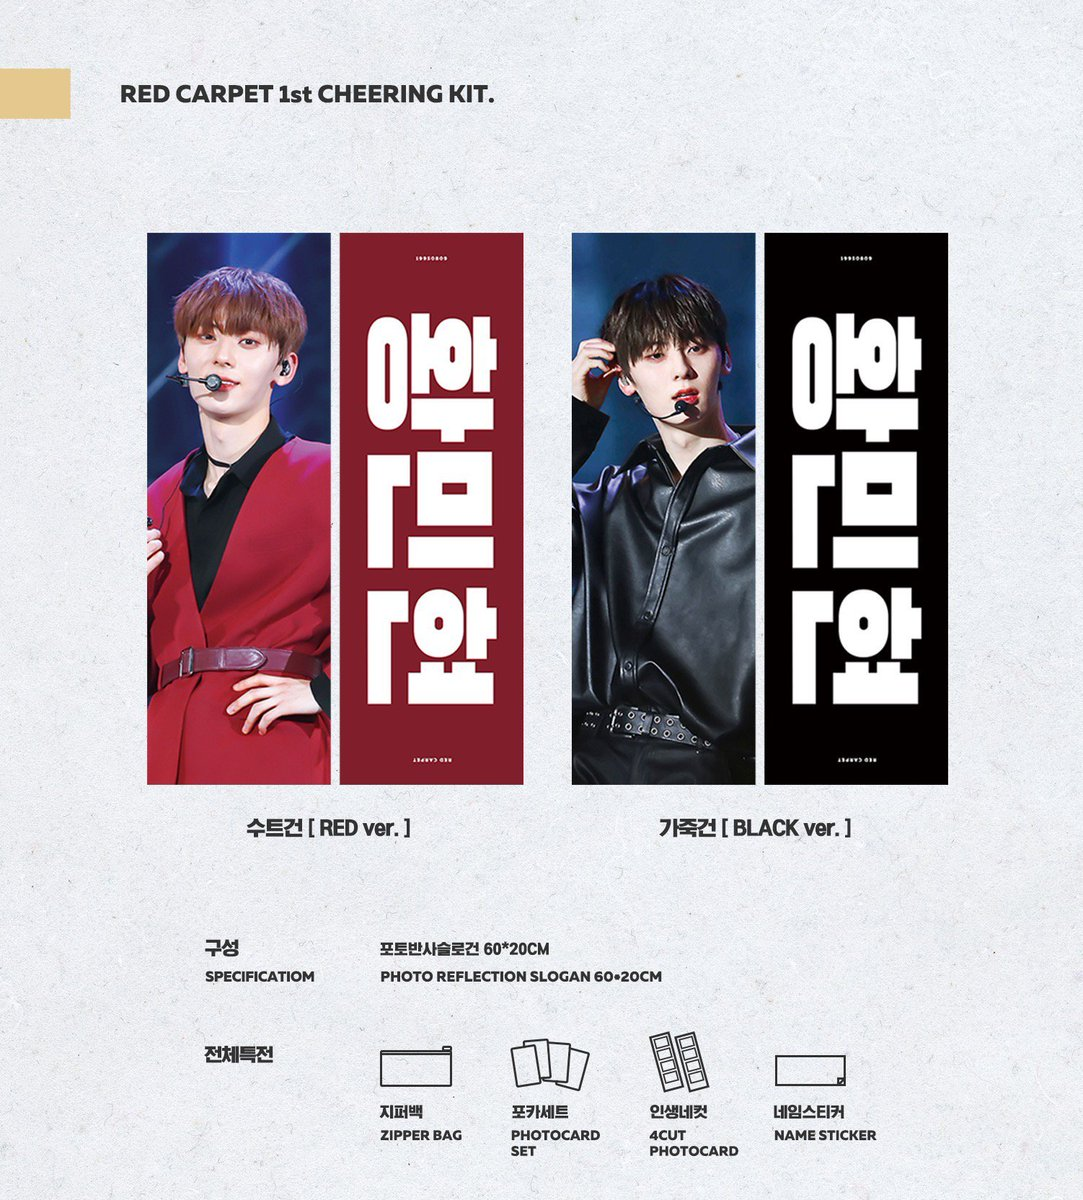 [MY GO  HELP RT]   Red Carpet 1st Cheering Kit    by @RedCarpet_mh   RM60 per set   Please check the details attached   23 March 2019 6PM   Second payment is required   DM @mylove_gos to order~!!<br>http://pic.twitter.com/V6VoD7HvhY